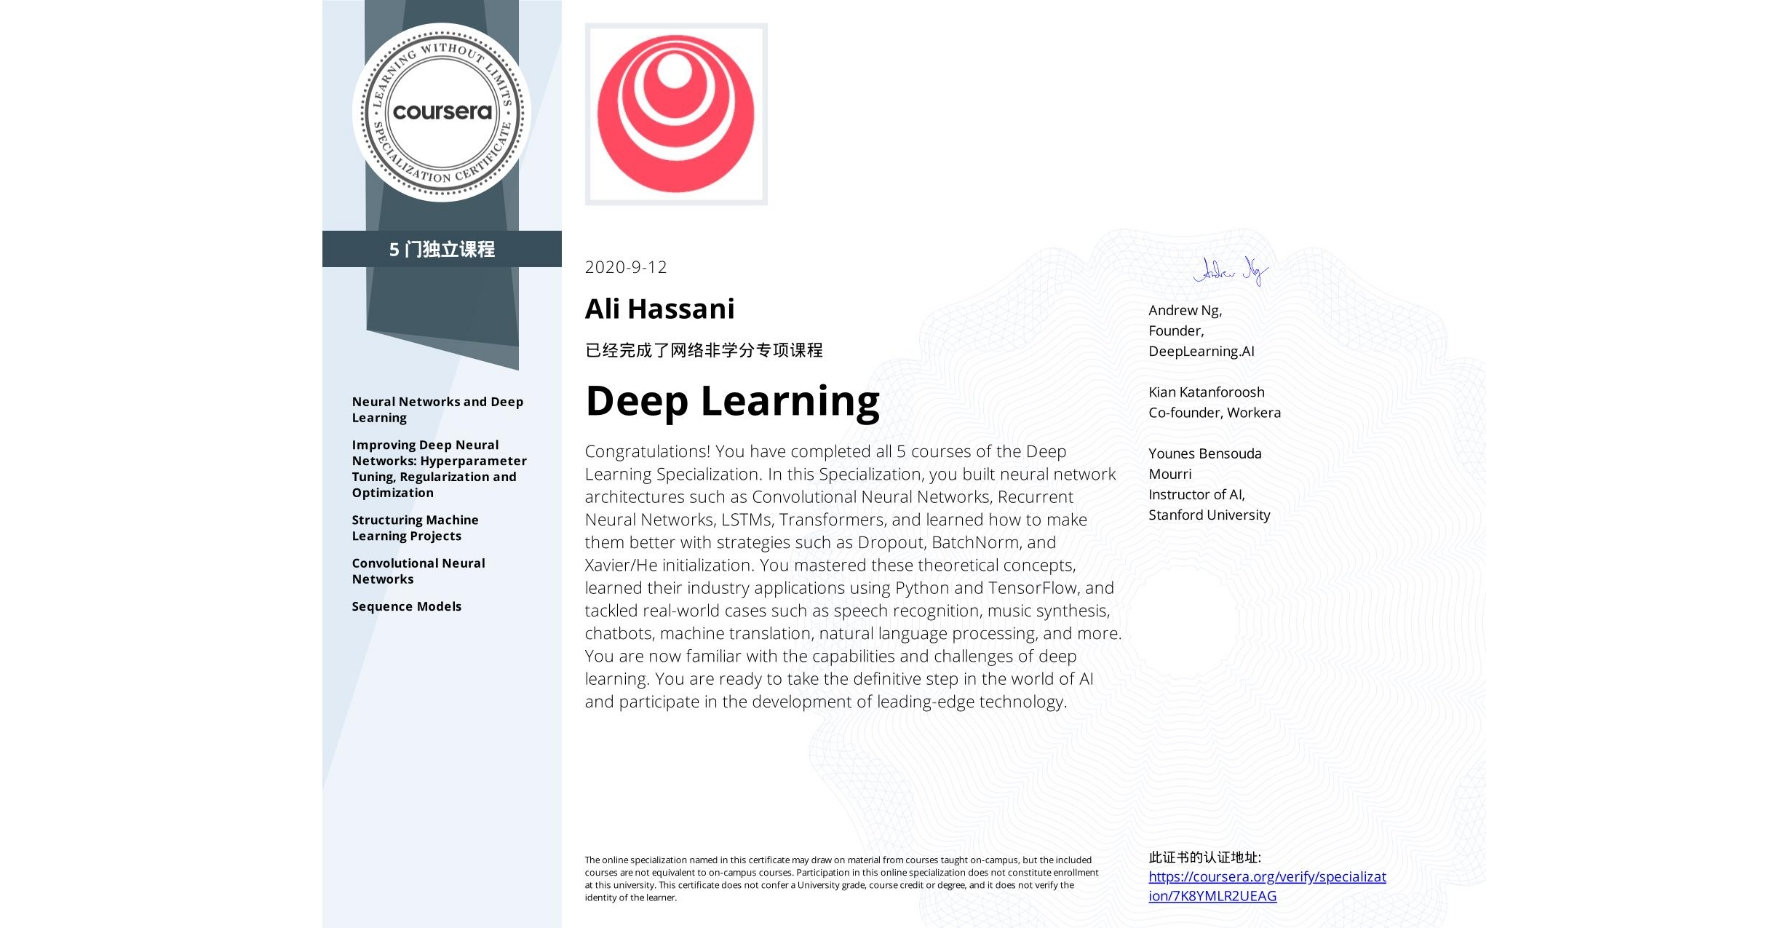 View certificate for Ali Hassani, Deep Learning, offered through Coursera. Congratulations! You have completed all 5 courses of the Deep Learning Specialization.  In this Specialization, you built neural network architectures such as Convolutional Neural Networks, Recurrent Neural Networks, LSTMs, Transformers, and learned how to make them better with strategies such as Dropout, BatchNorm, and Xavier/He initialization. You mastered these theoretical concepts, learned their industry applications using Python and TensorFlow, and tackled real-world cases such as speech recognition, music synthesis, chatbots, machine translation, natural language processing, and more.  You are now familiar with the capabilities and challenges of deep learning. You are ready to take the definitive step in the world of AI and participate in the development of leading-edge technology.